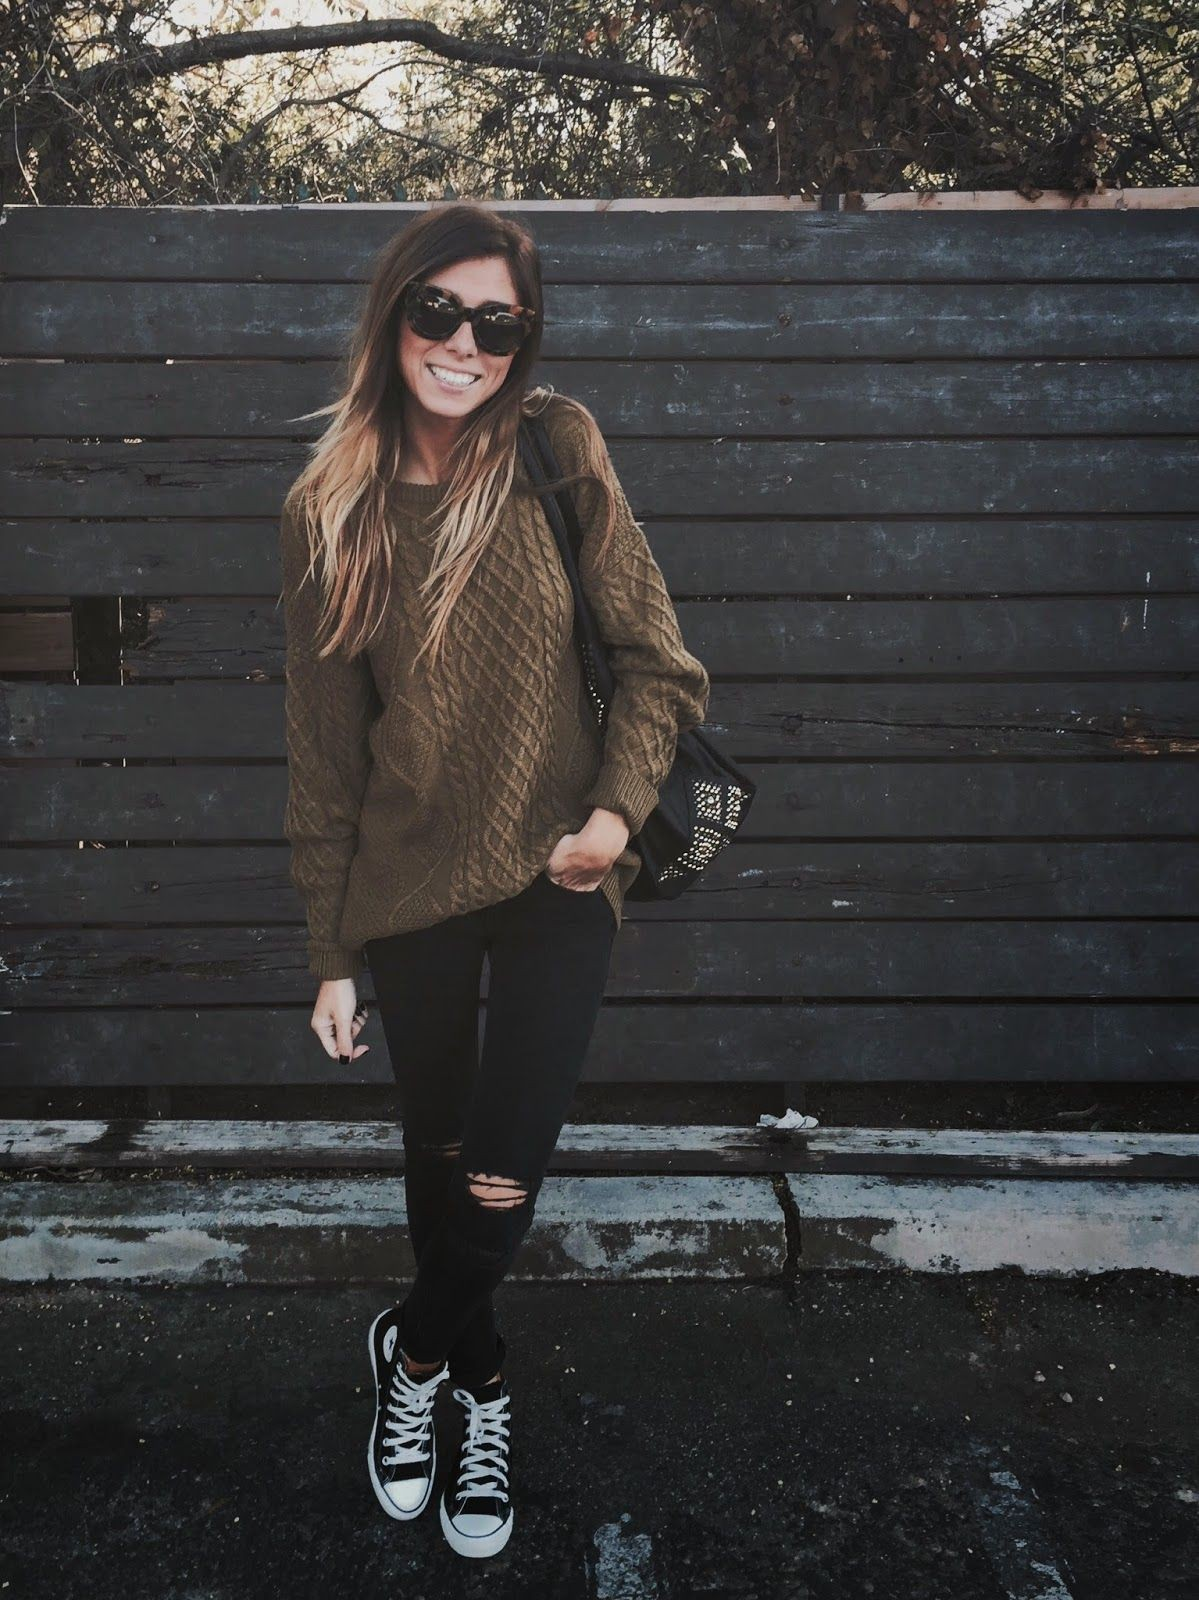 Brown and black classy outfit with trousers, leggings, jacket